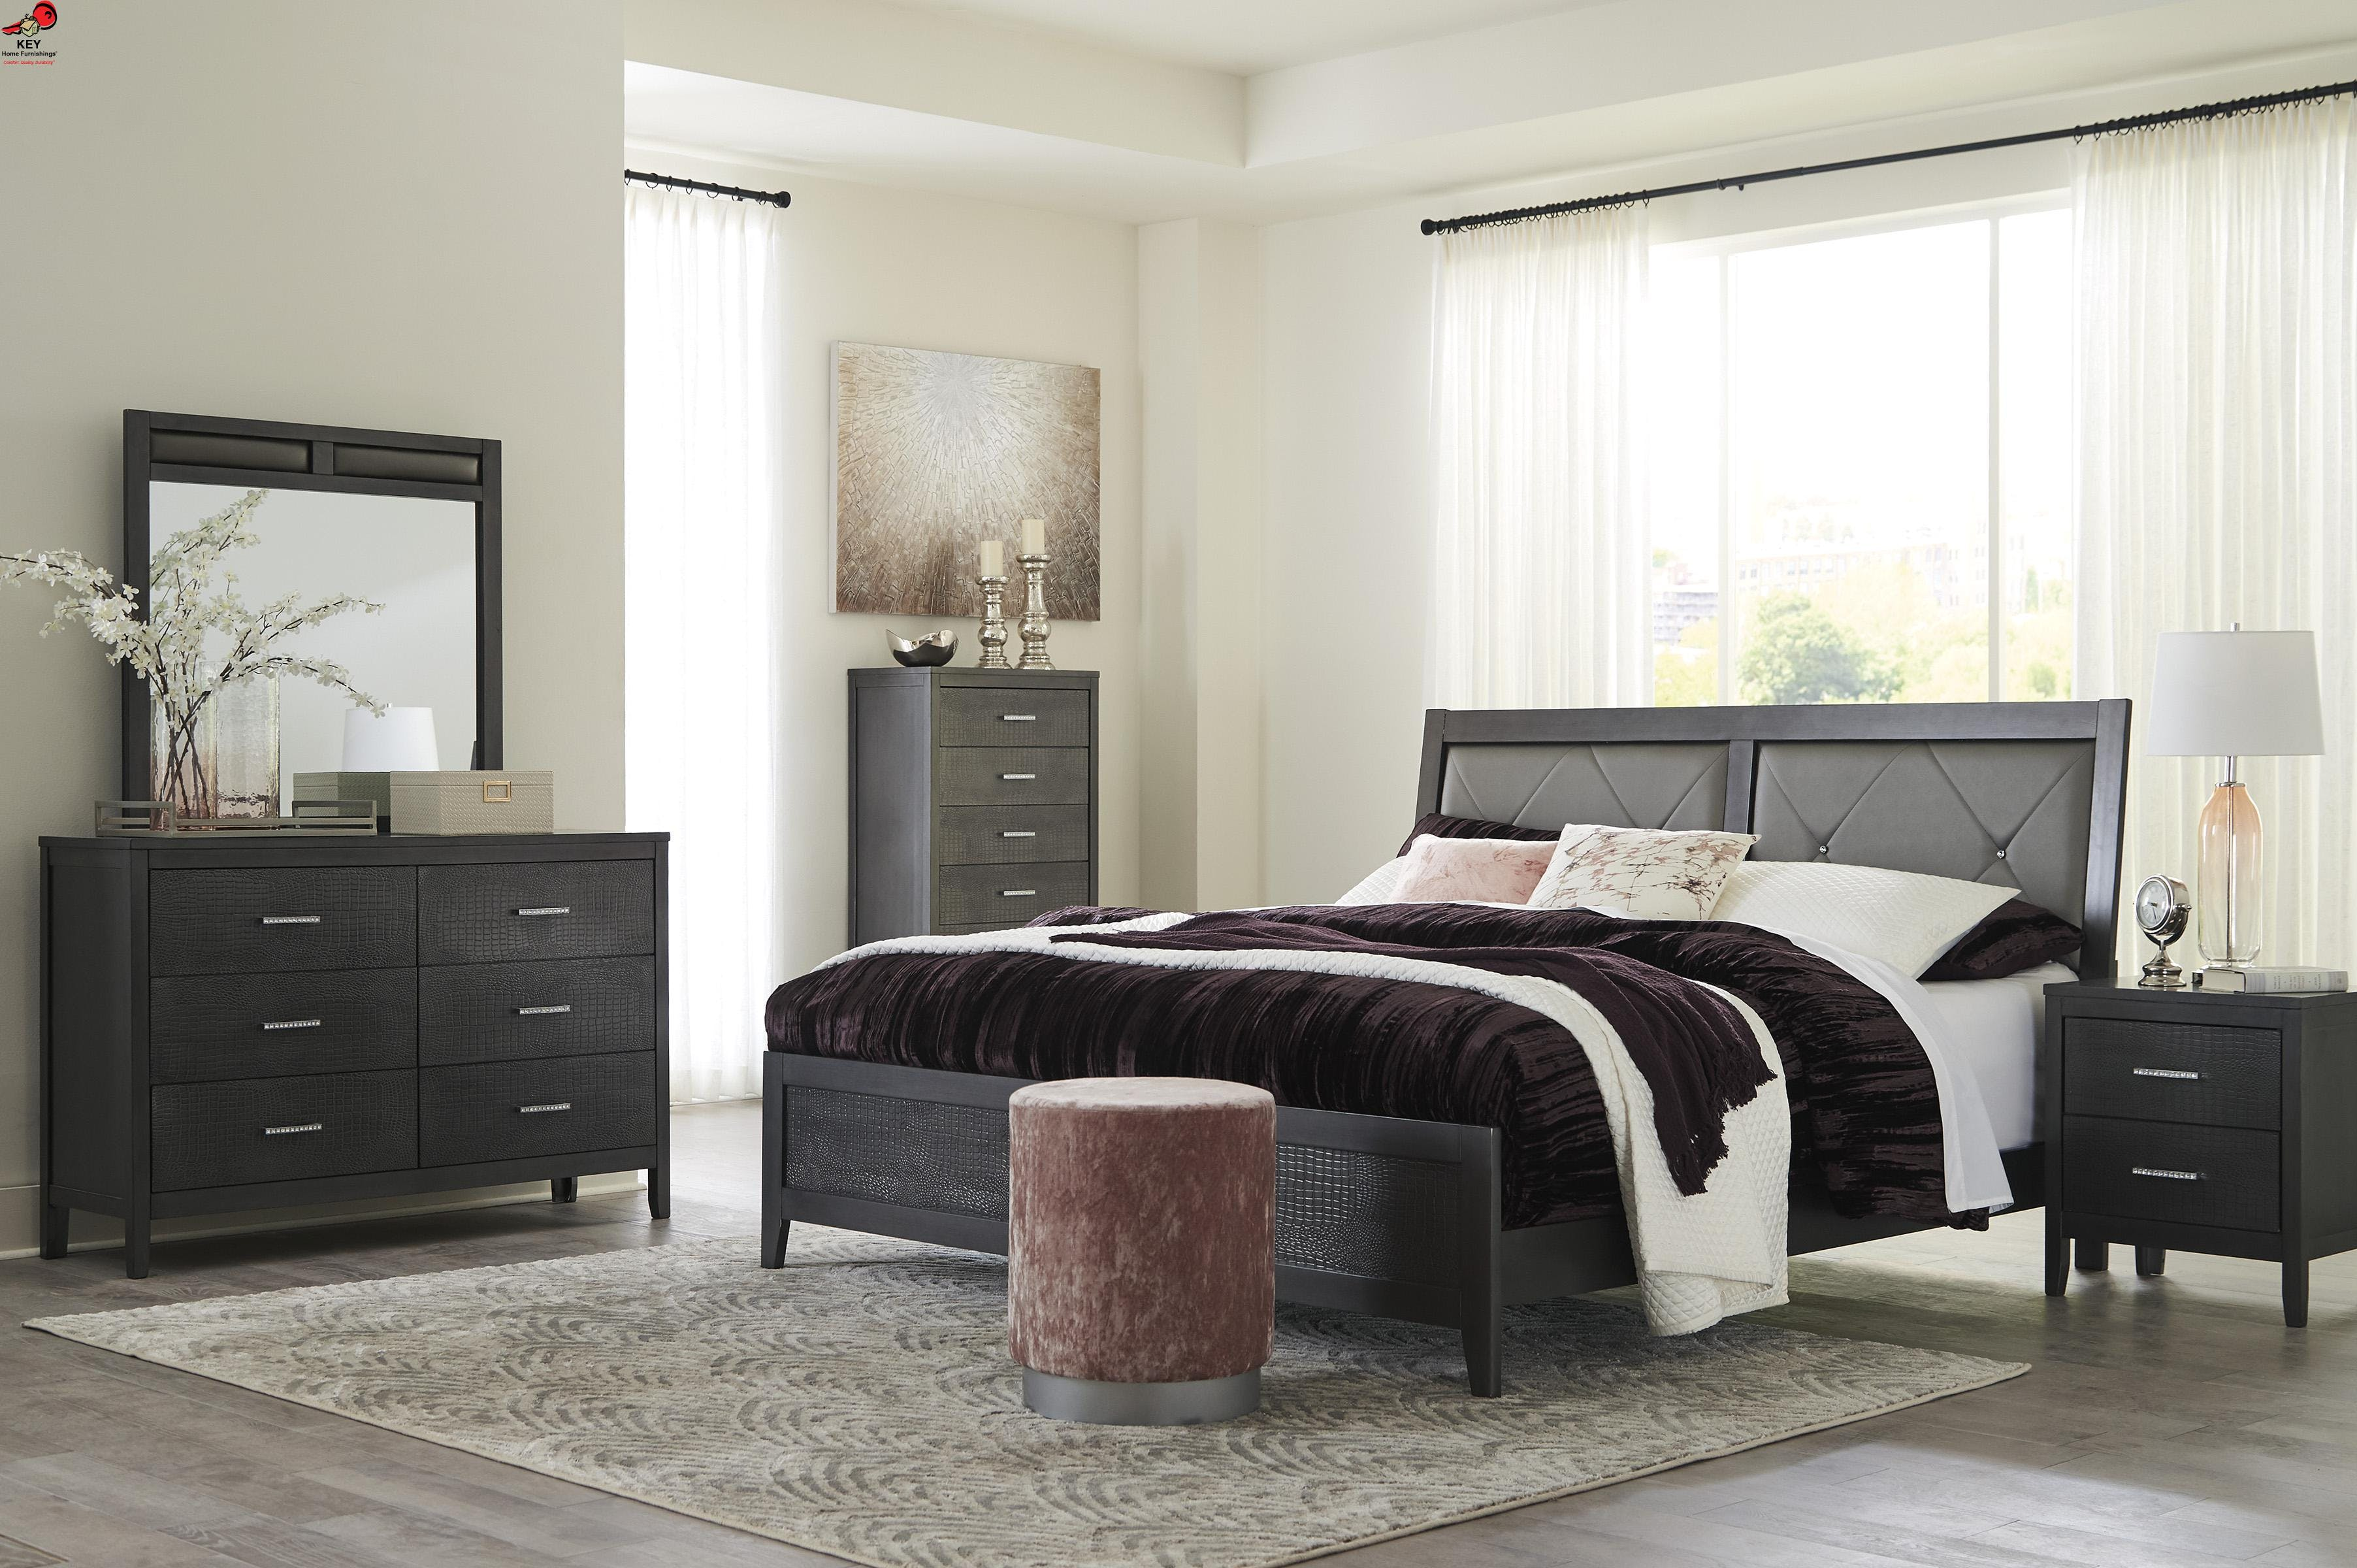 Picture of: Ashley Delmar 7 Piece Queen Panel Bed Set B483 31 36 46 81 96 92 2 Portland Or Key Home